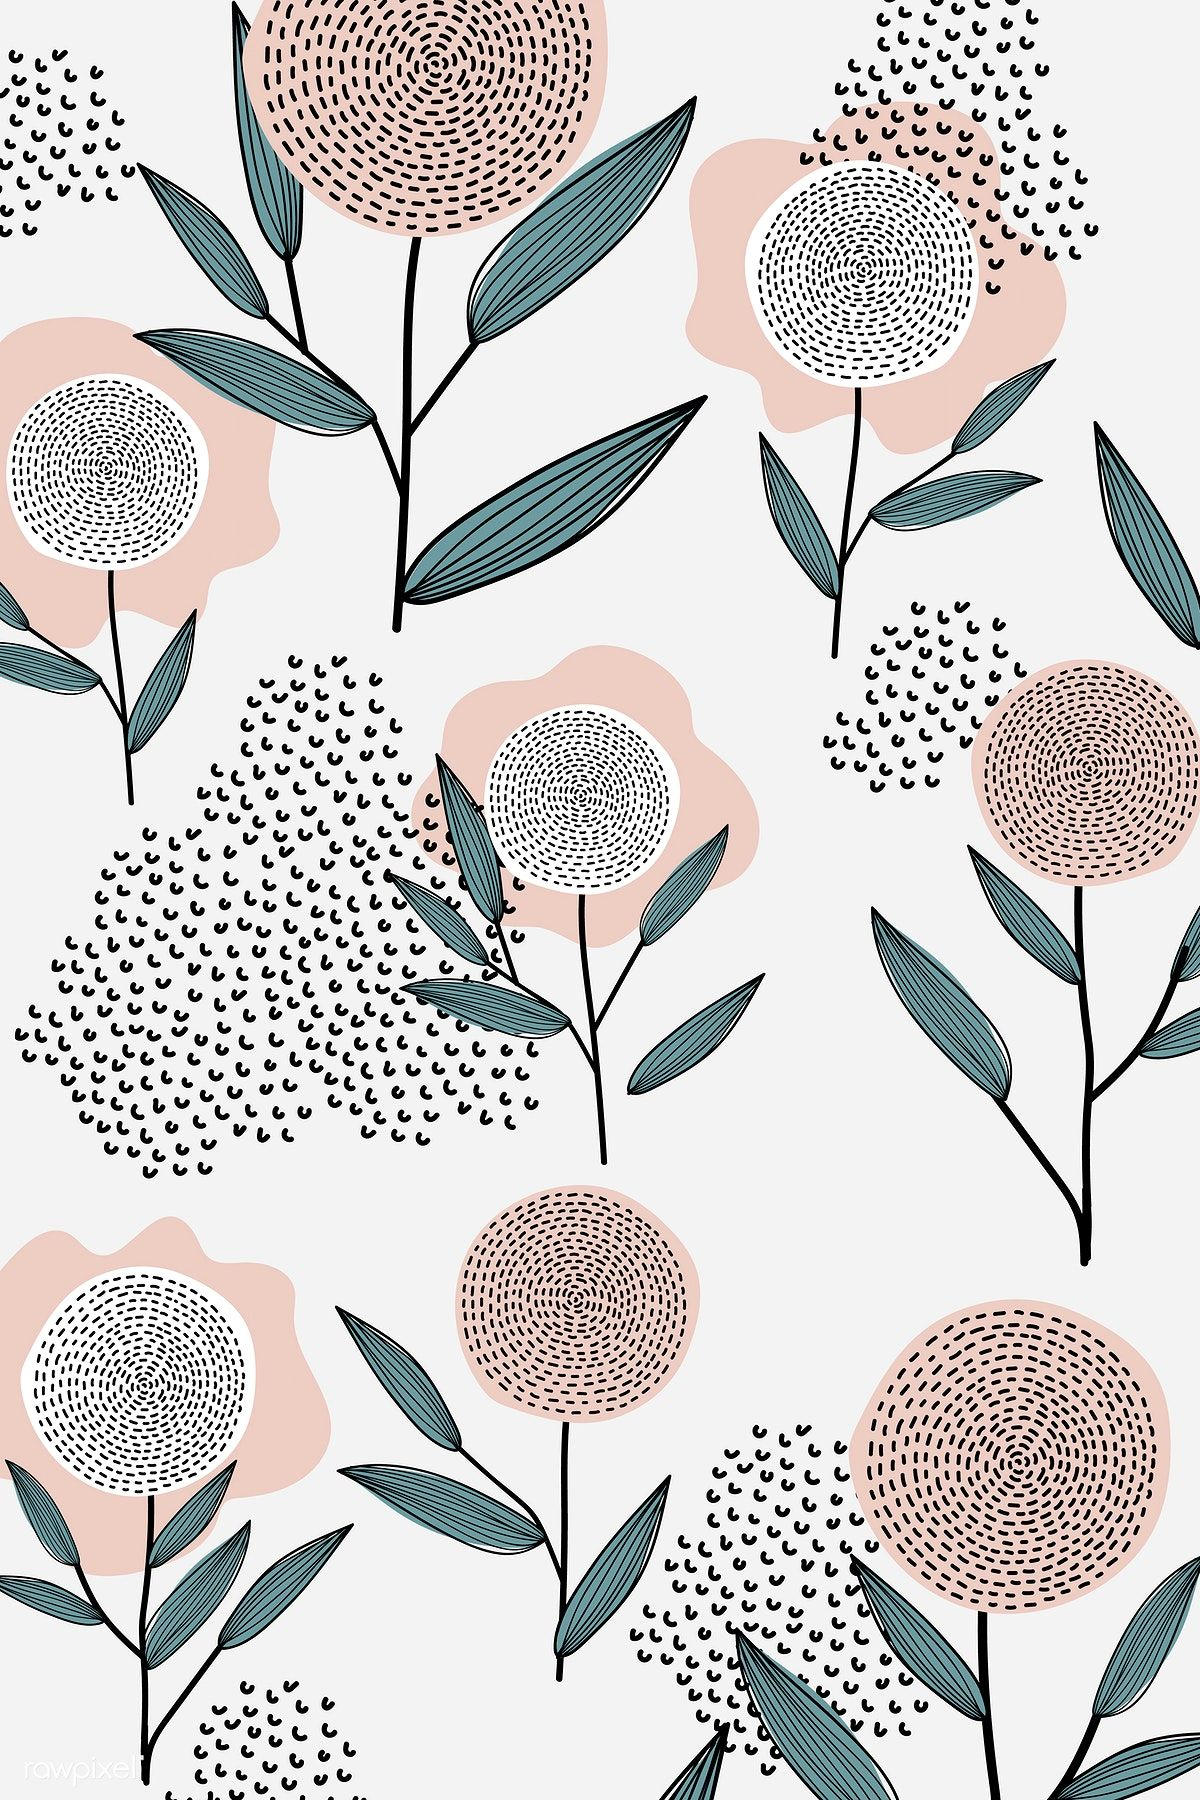 Download Premium Vector Of Flower Patterned White Background Vector 893044 Cute Patterns Wallpaper Flower Patterns Flower Pattern Design